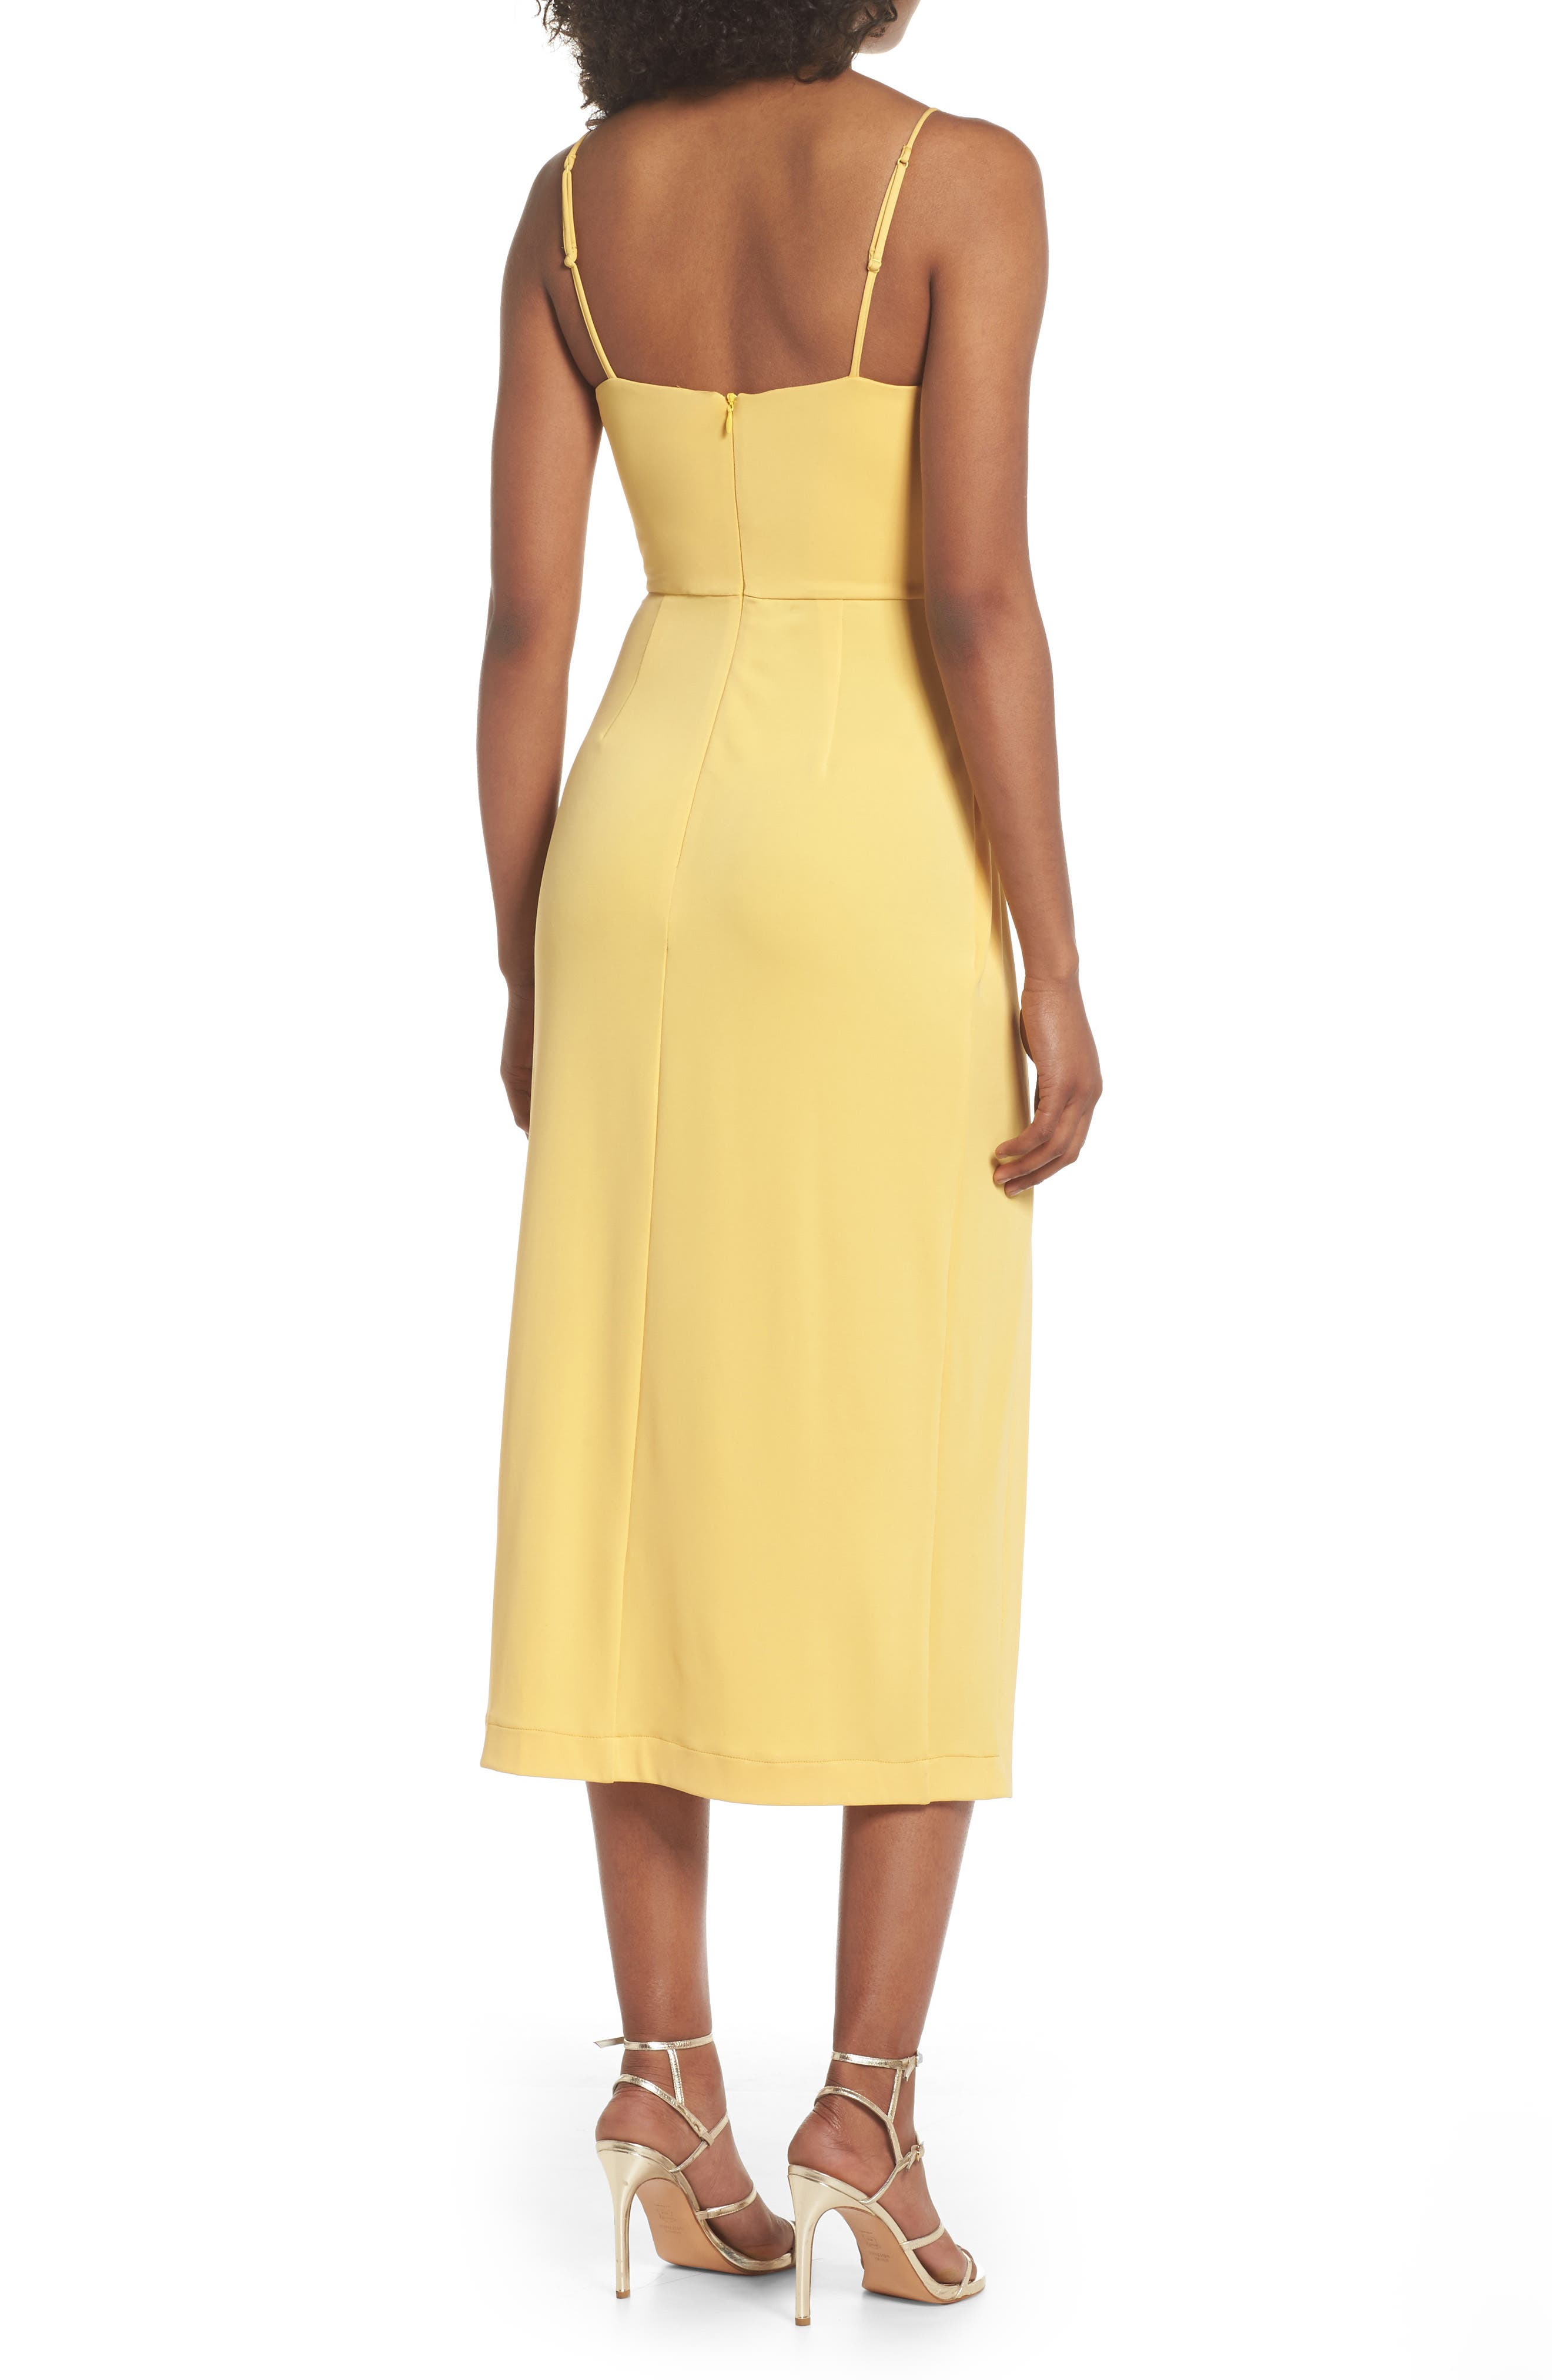 Recollect Slinky Side Tie Midi Dress,                             Alternate thumbnail 2, color,                             740